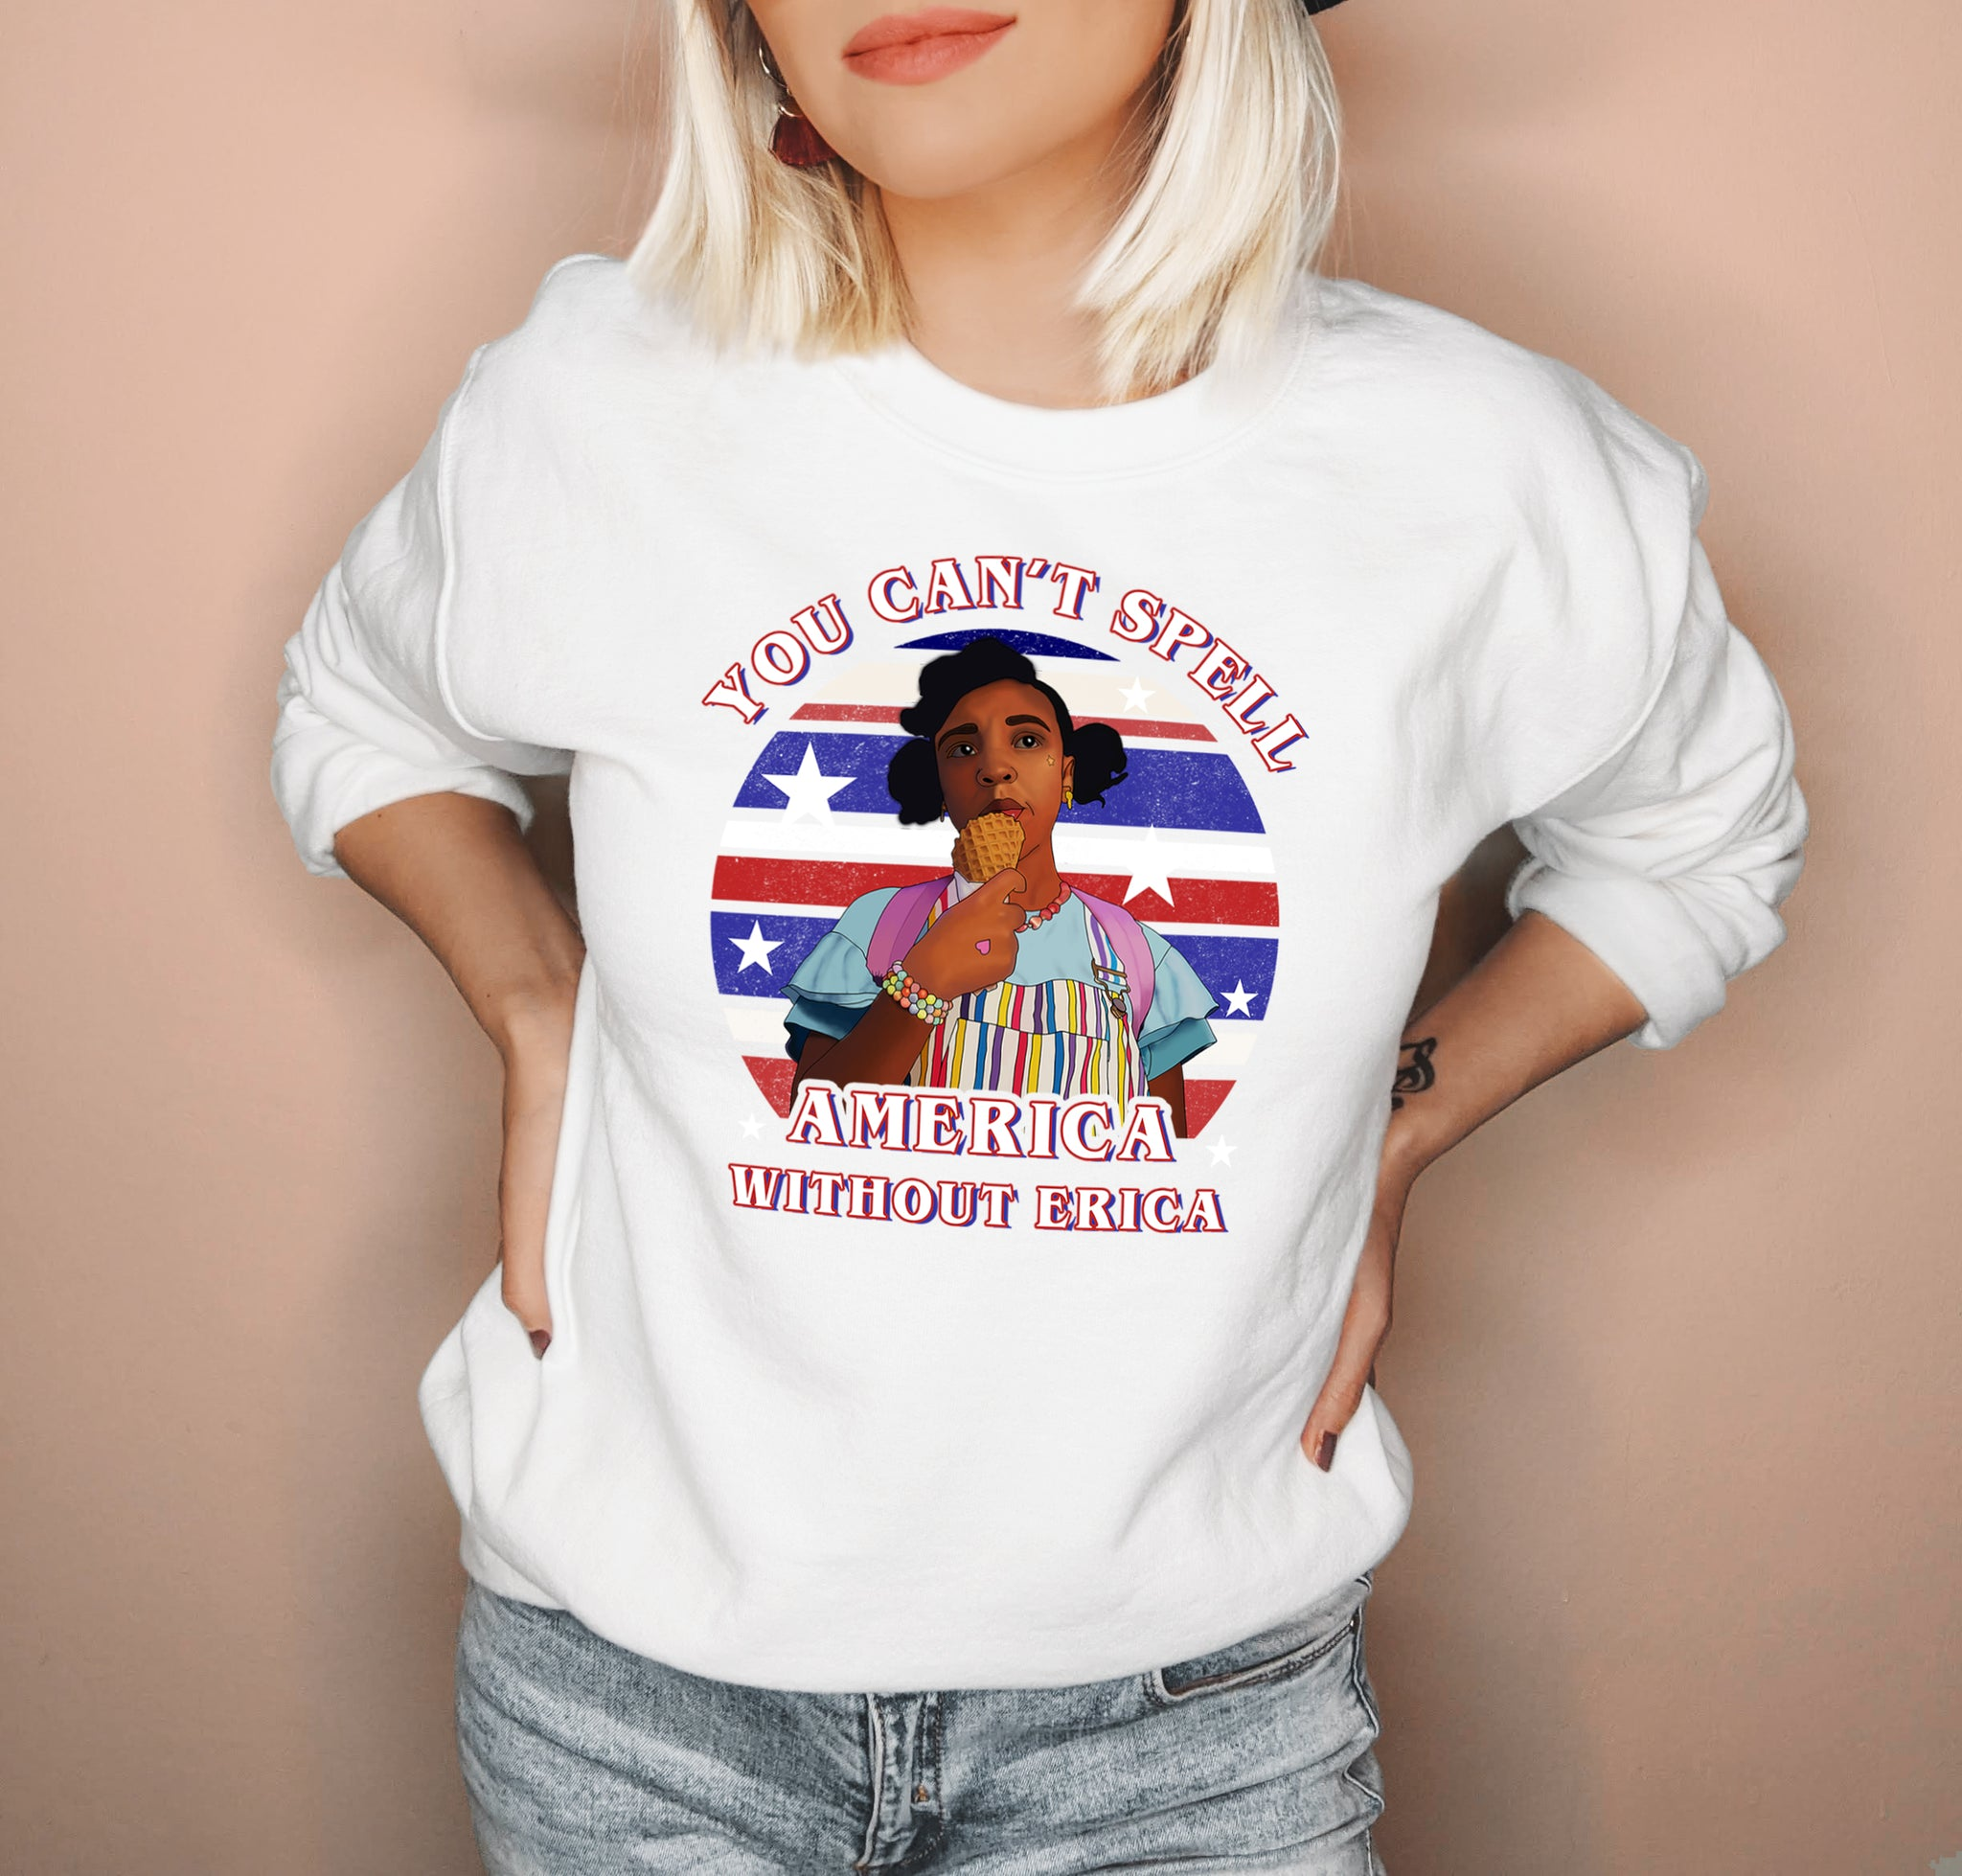 White sweatshirt with erica from stranger things that says you can't spell america without erica - HighCiti